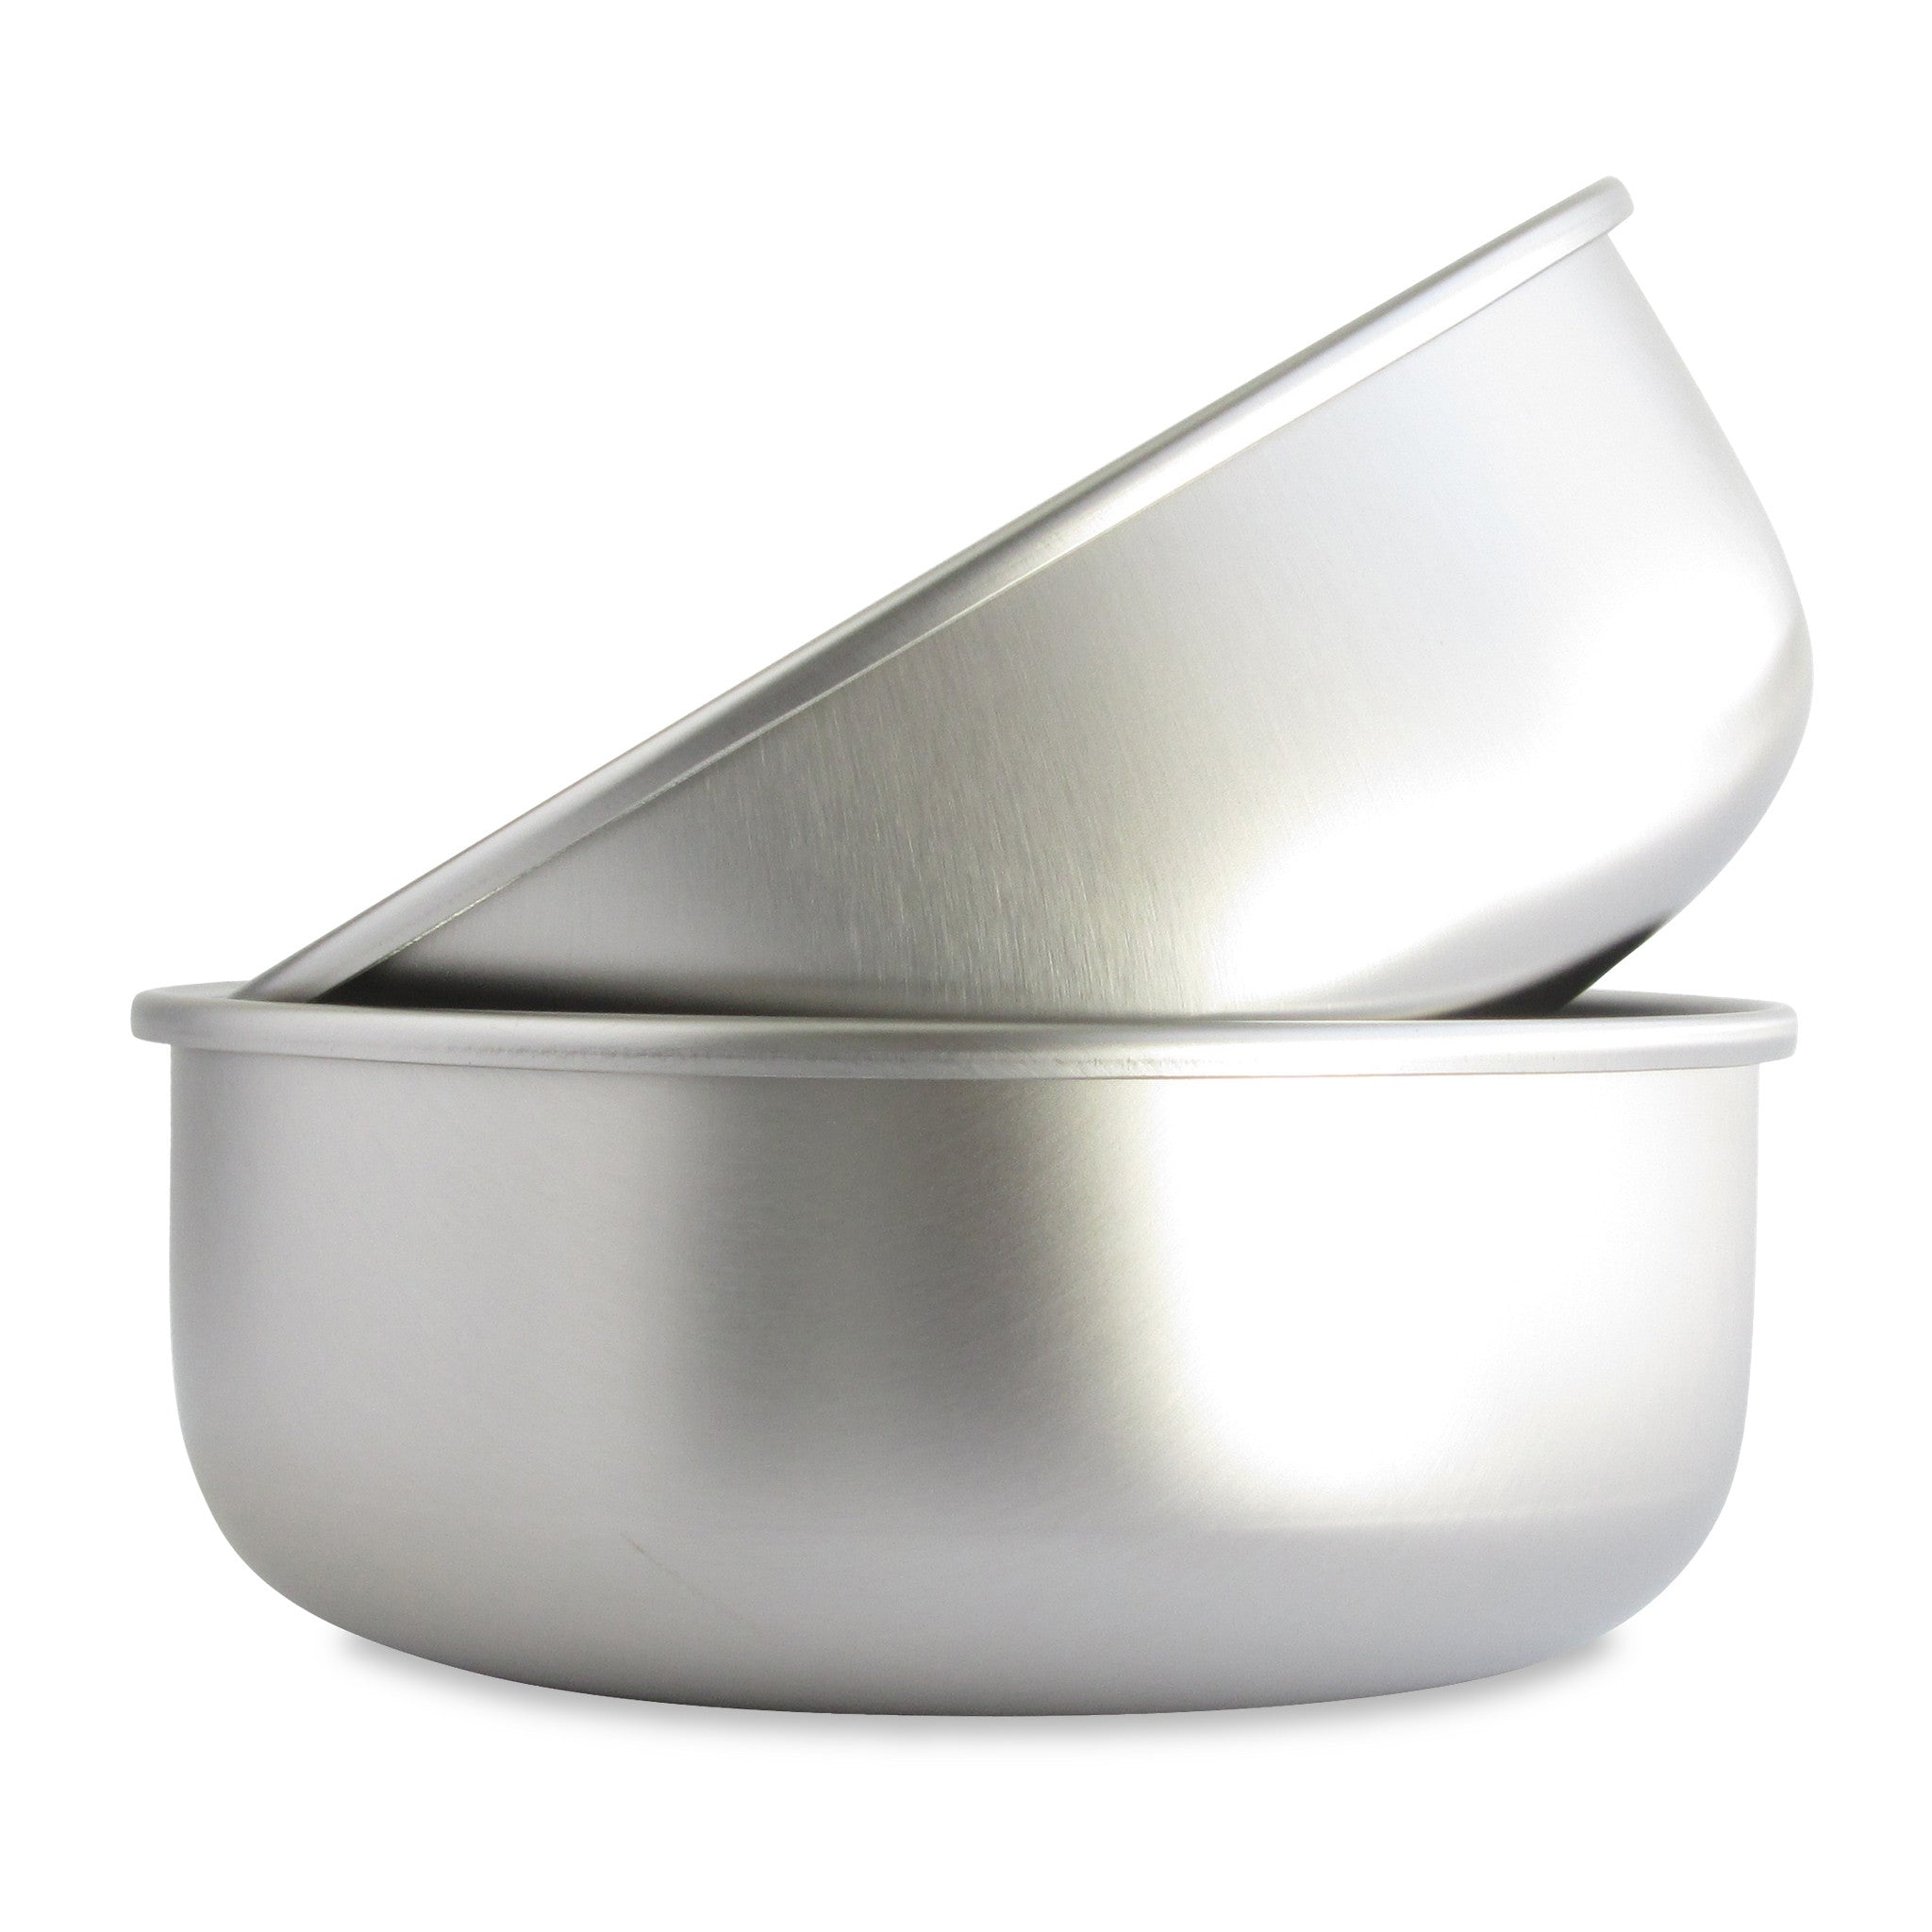 Stainless Steel Dog Bowls Made in USA - BASIS PET